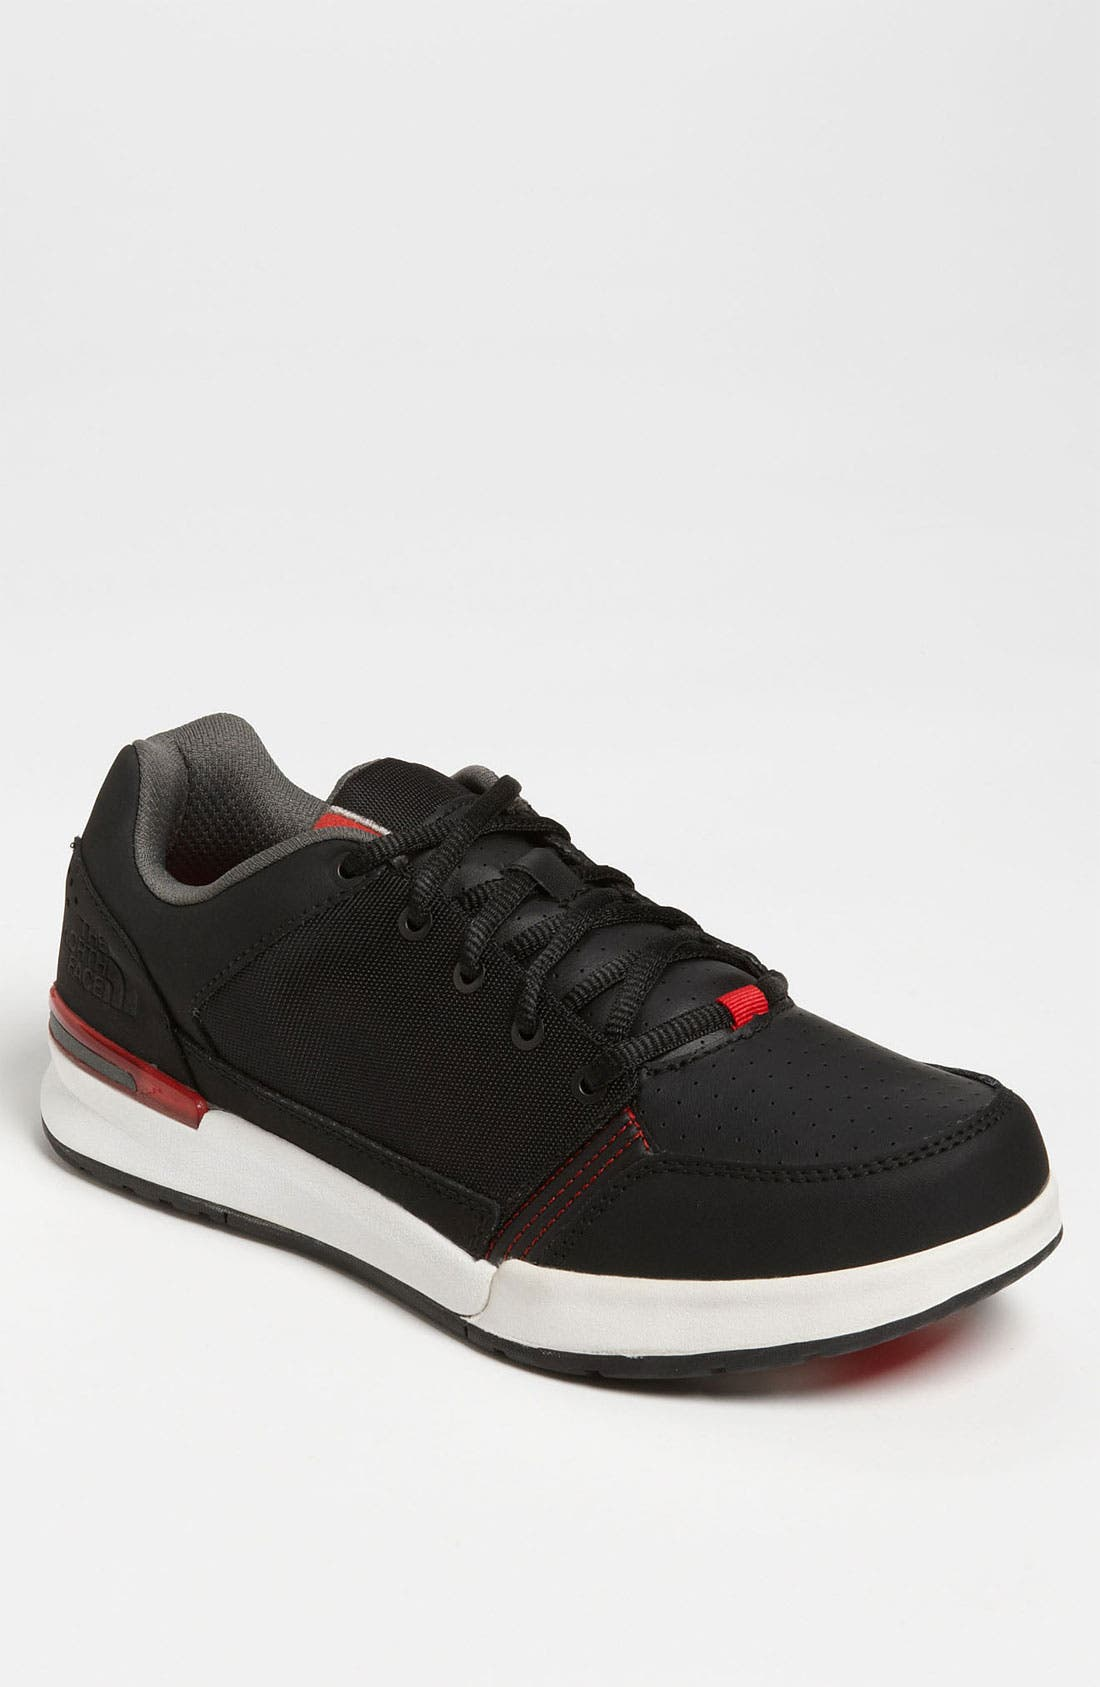 Alternate Image 1 Selected - The North Face 'Shifter' Sneaker